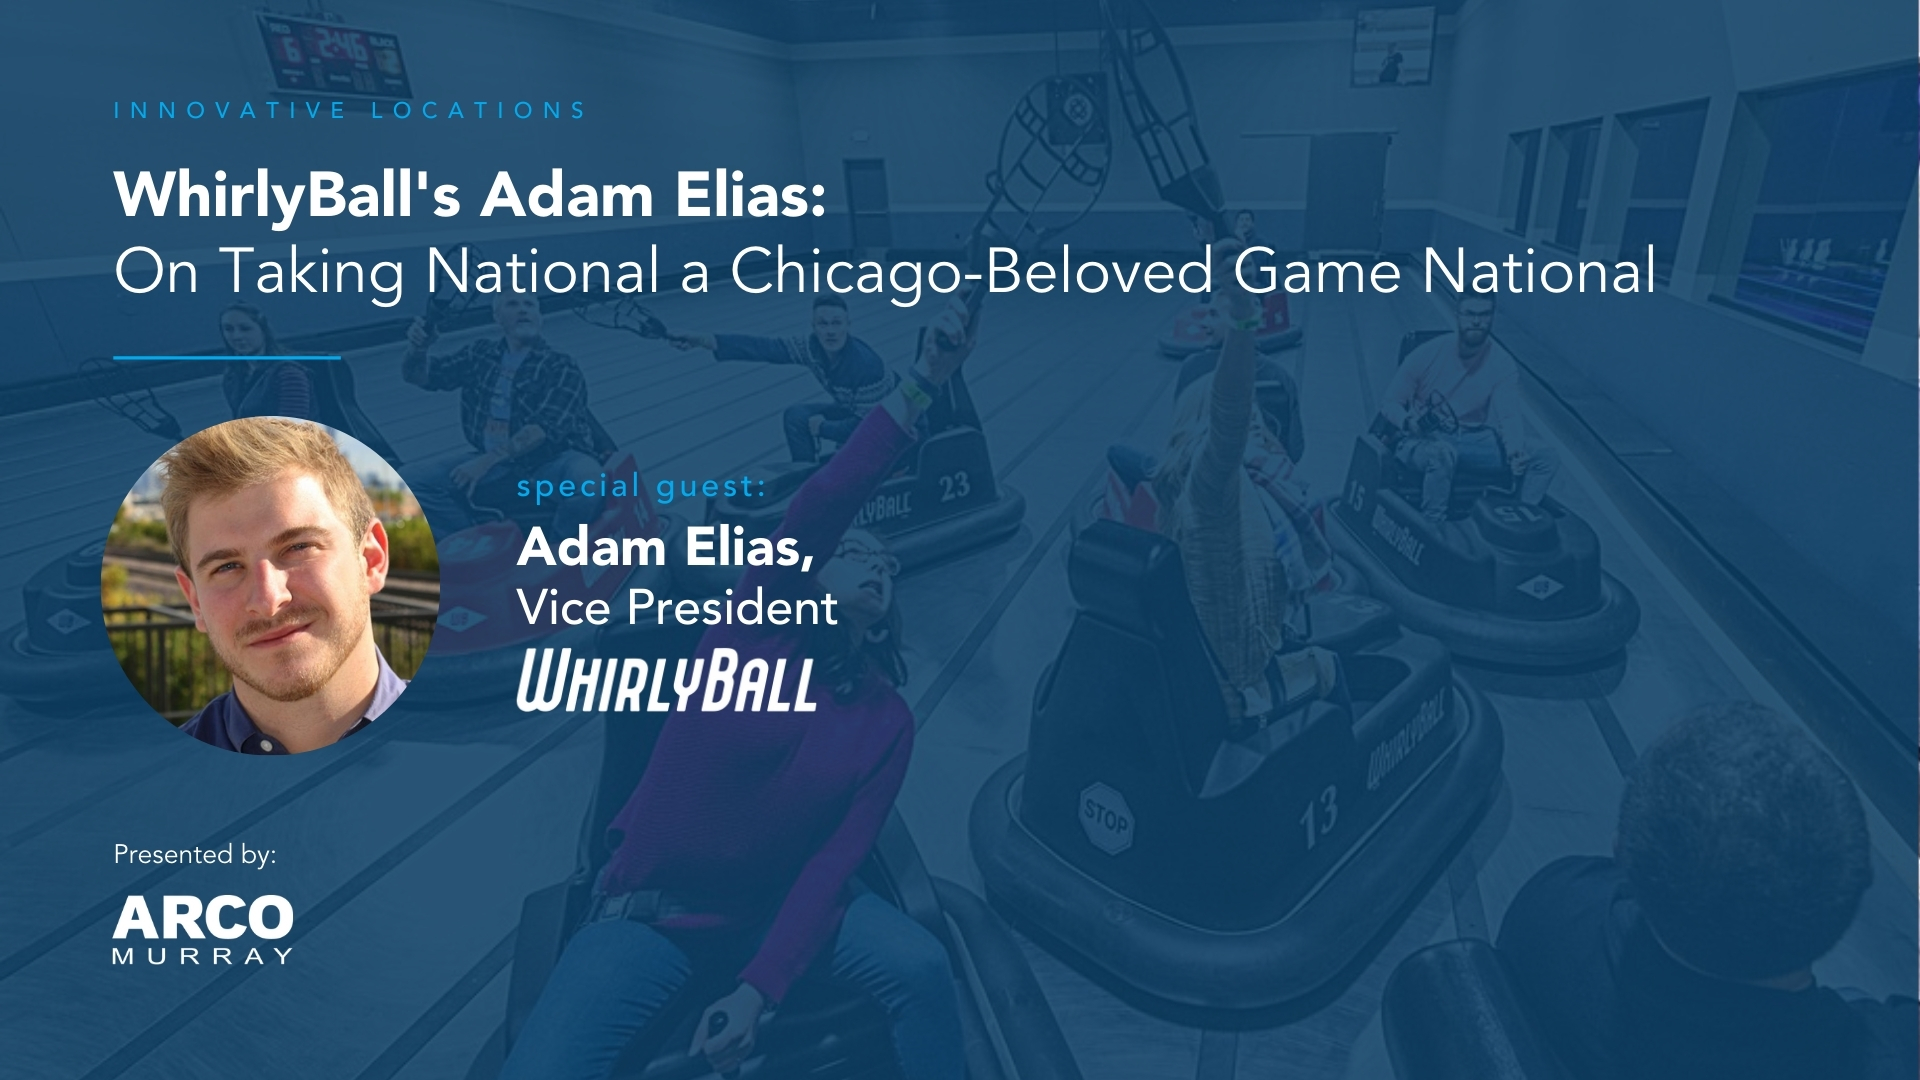 Innovative Locations: WhirlyBall's Adam Elias on Taking National a Game that Crosses Bumper Cars, Lacrosse and Basketball